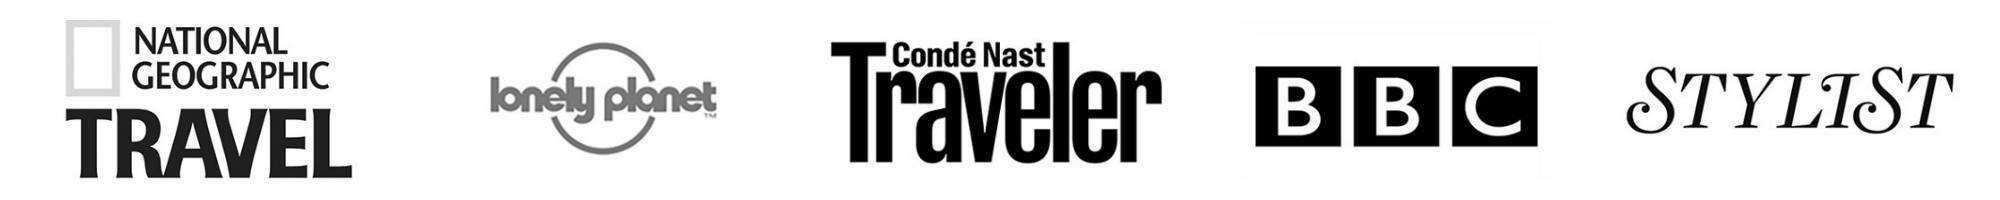 Award winning blog Inside the Travel Lab featured in Stylist Nat Geo Lonely Planet BBC